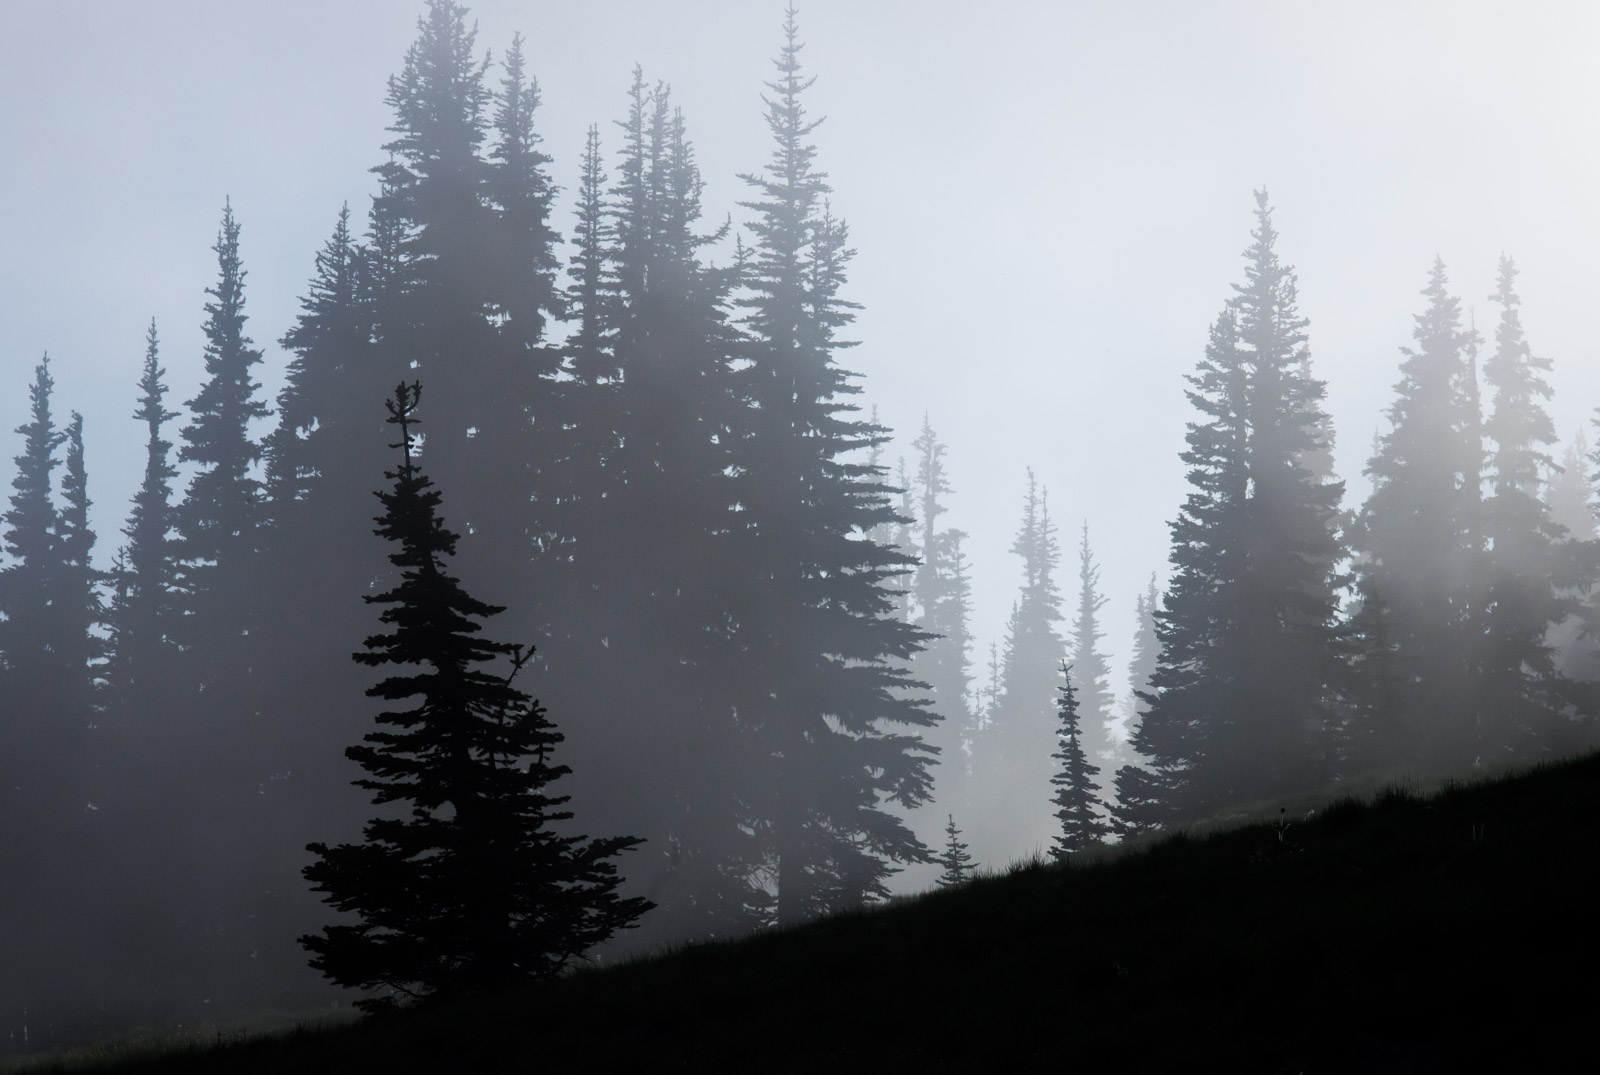 Trees in mist create layers of gray.